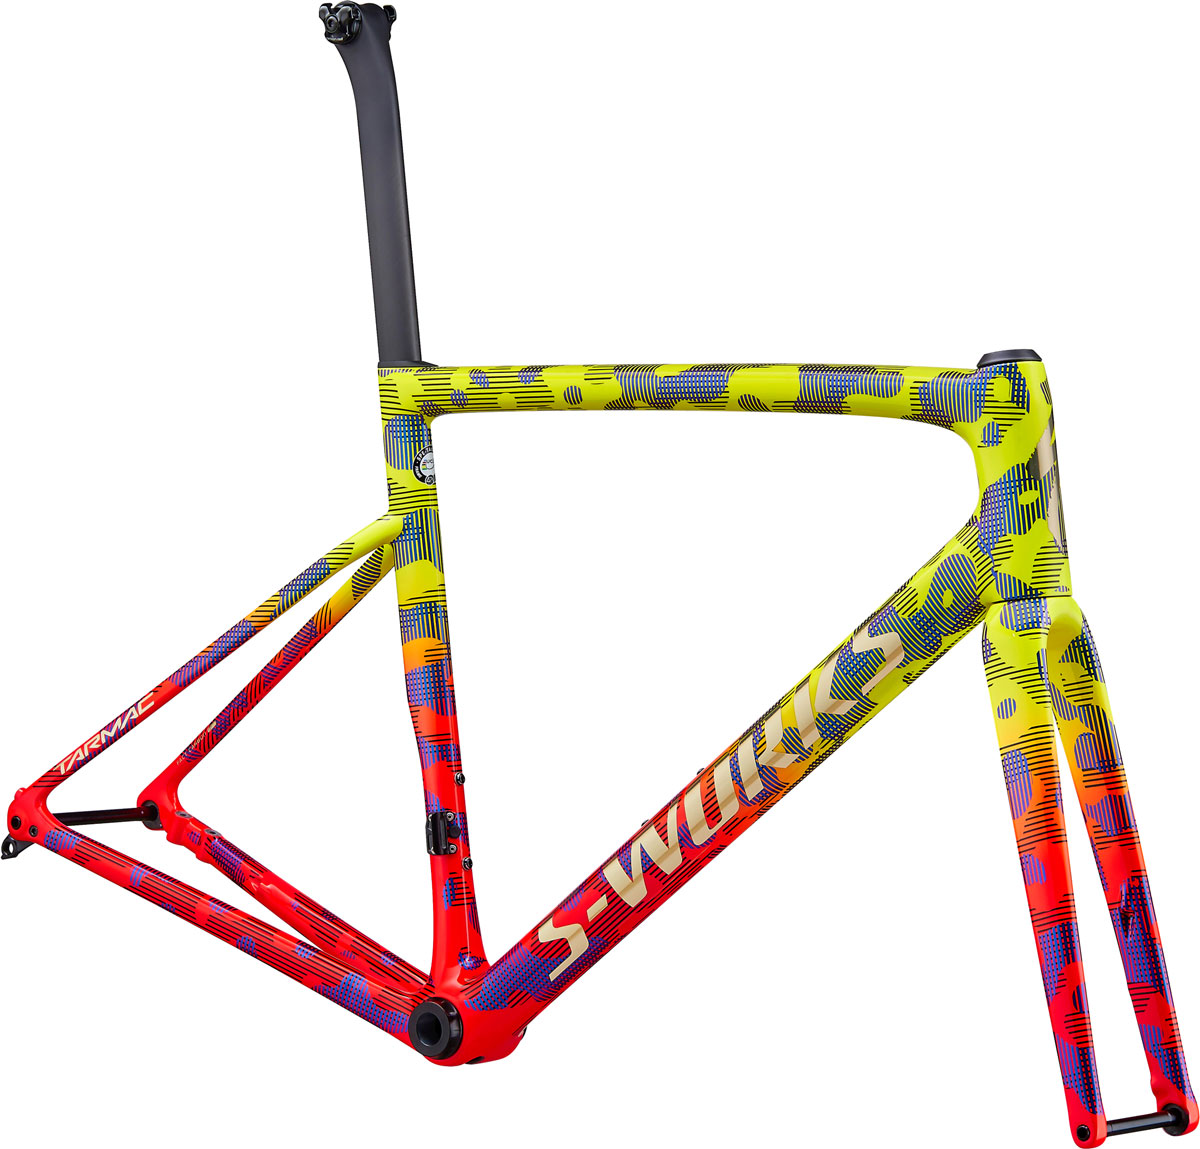 rám silničního kola Specialized S-Works Tarmac SL6 Disc 2020 gloss yellow/red/black